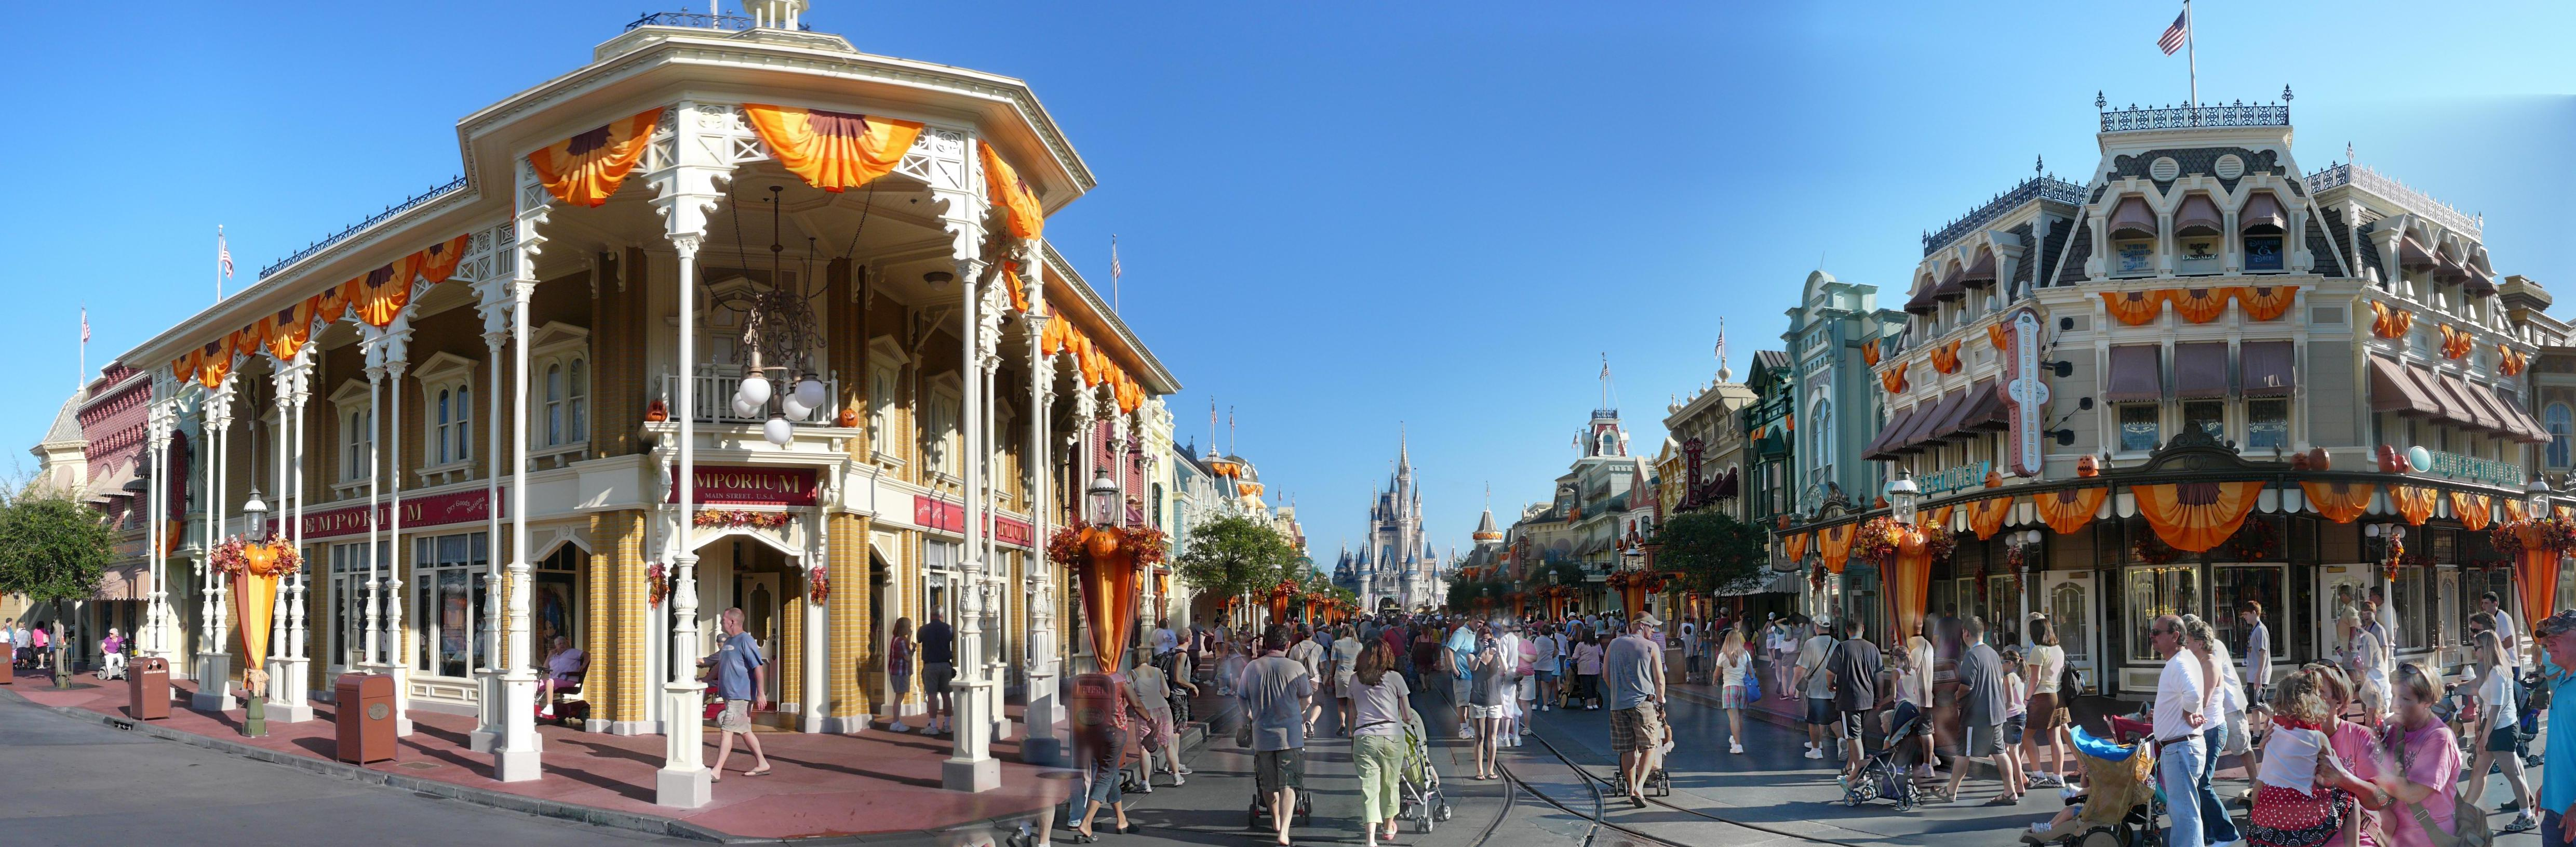 File main street during day magic kingdom panorama 2009 3985541190